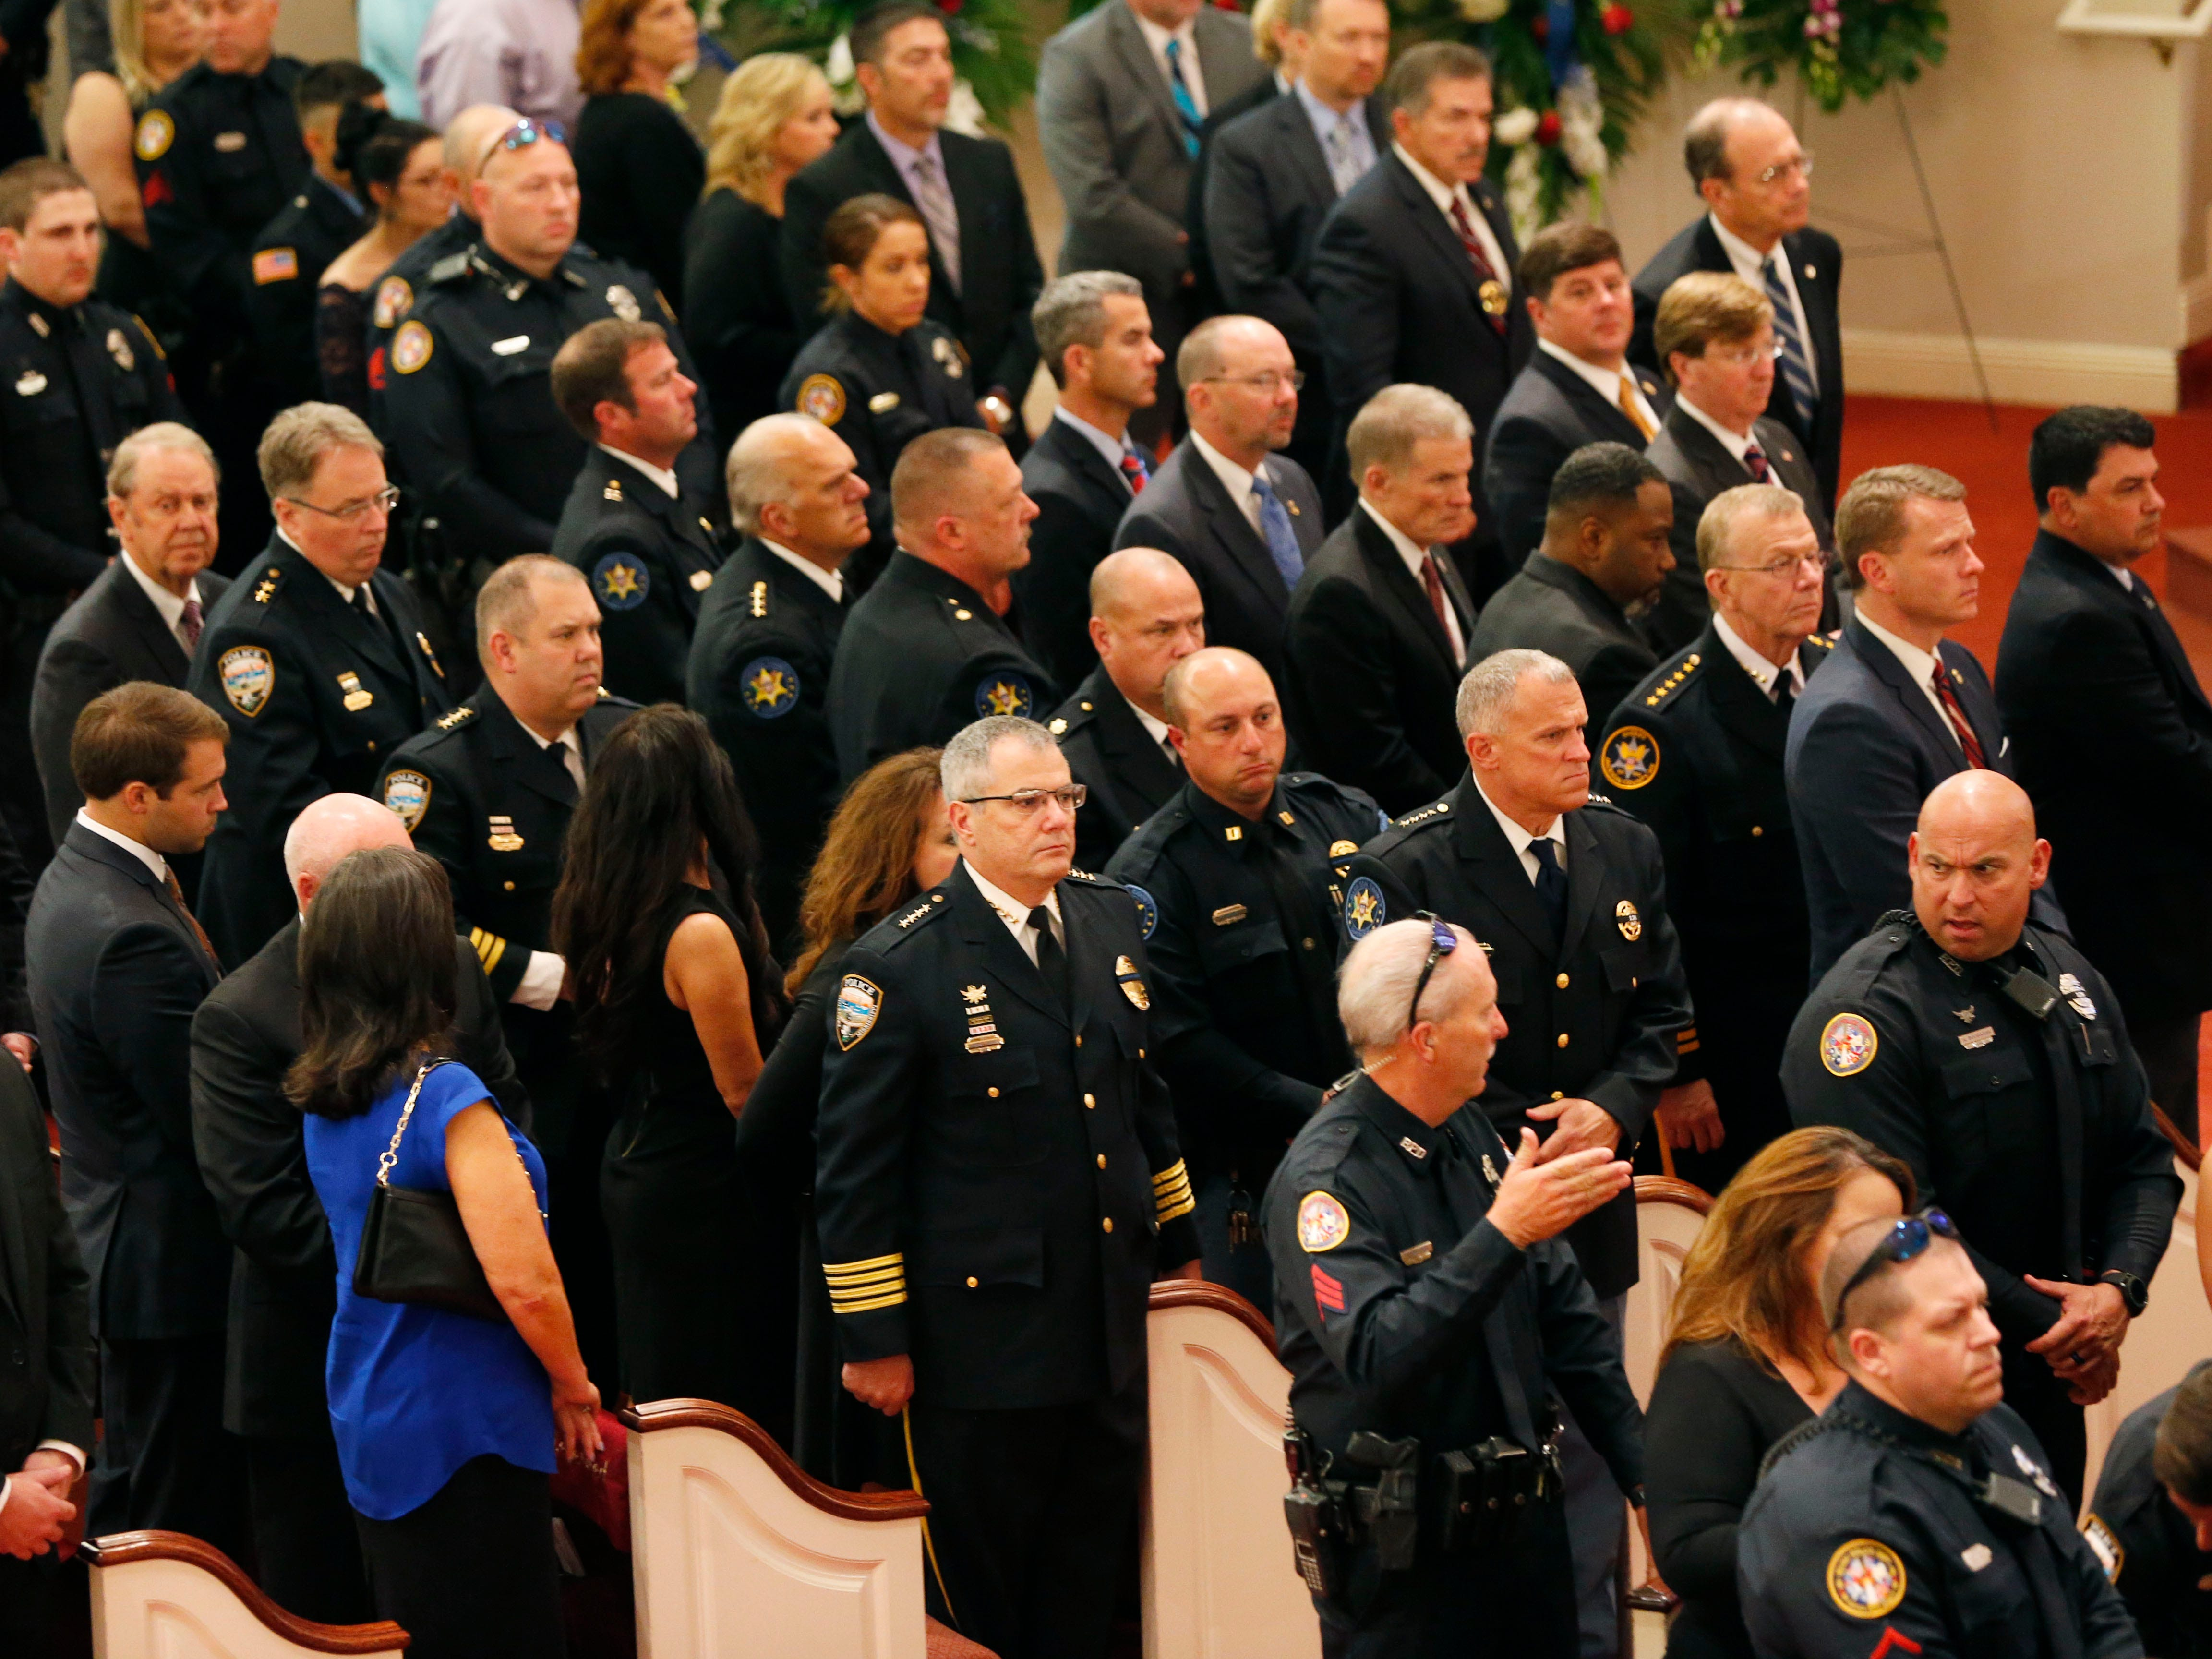 Visiting law enforcement officers, friends and community residents, stand to pay their last respects to officer Robert S. McKeithen and his family as they exit the First Baptist Church of Biloxi, Monday, May 13, 2019, following funeral services.